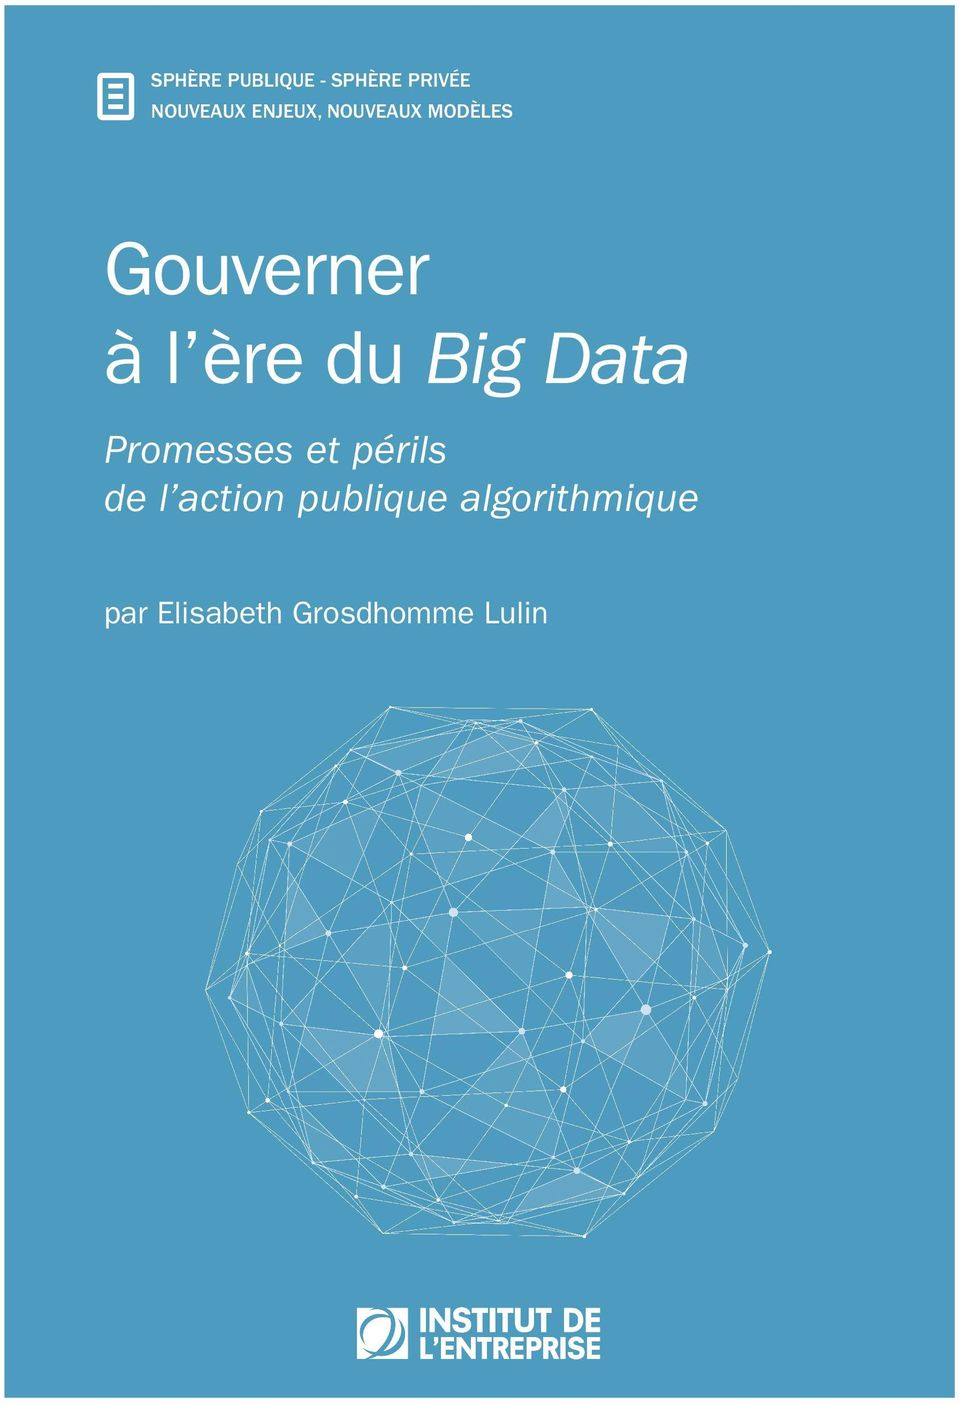 Big Data Promesses et périls de l action